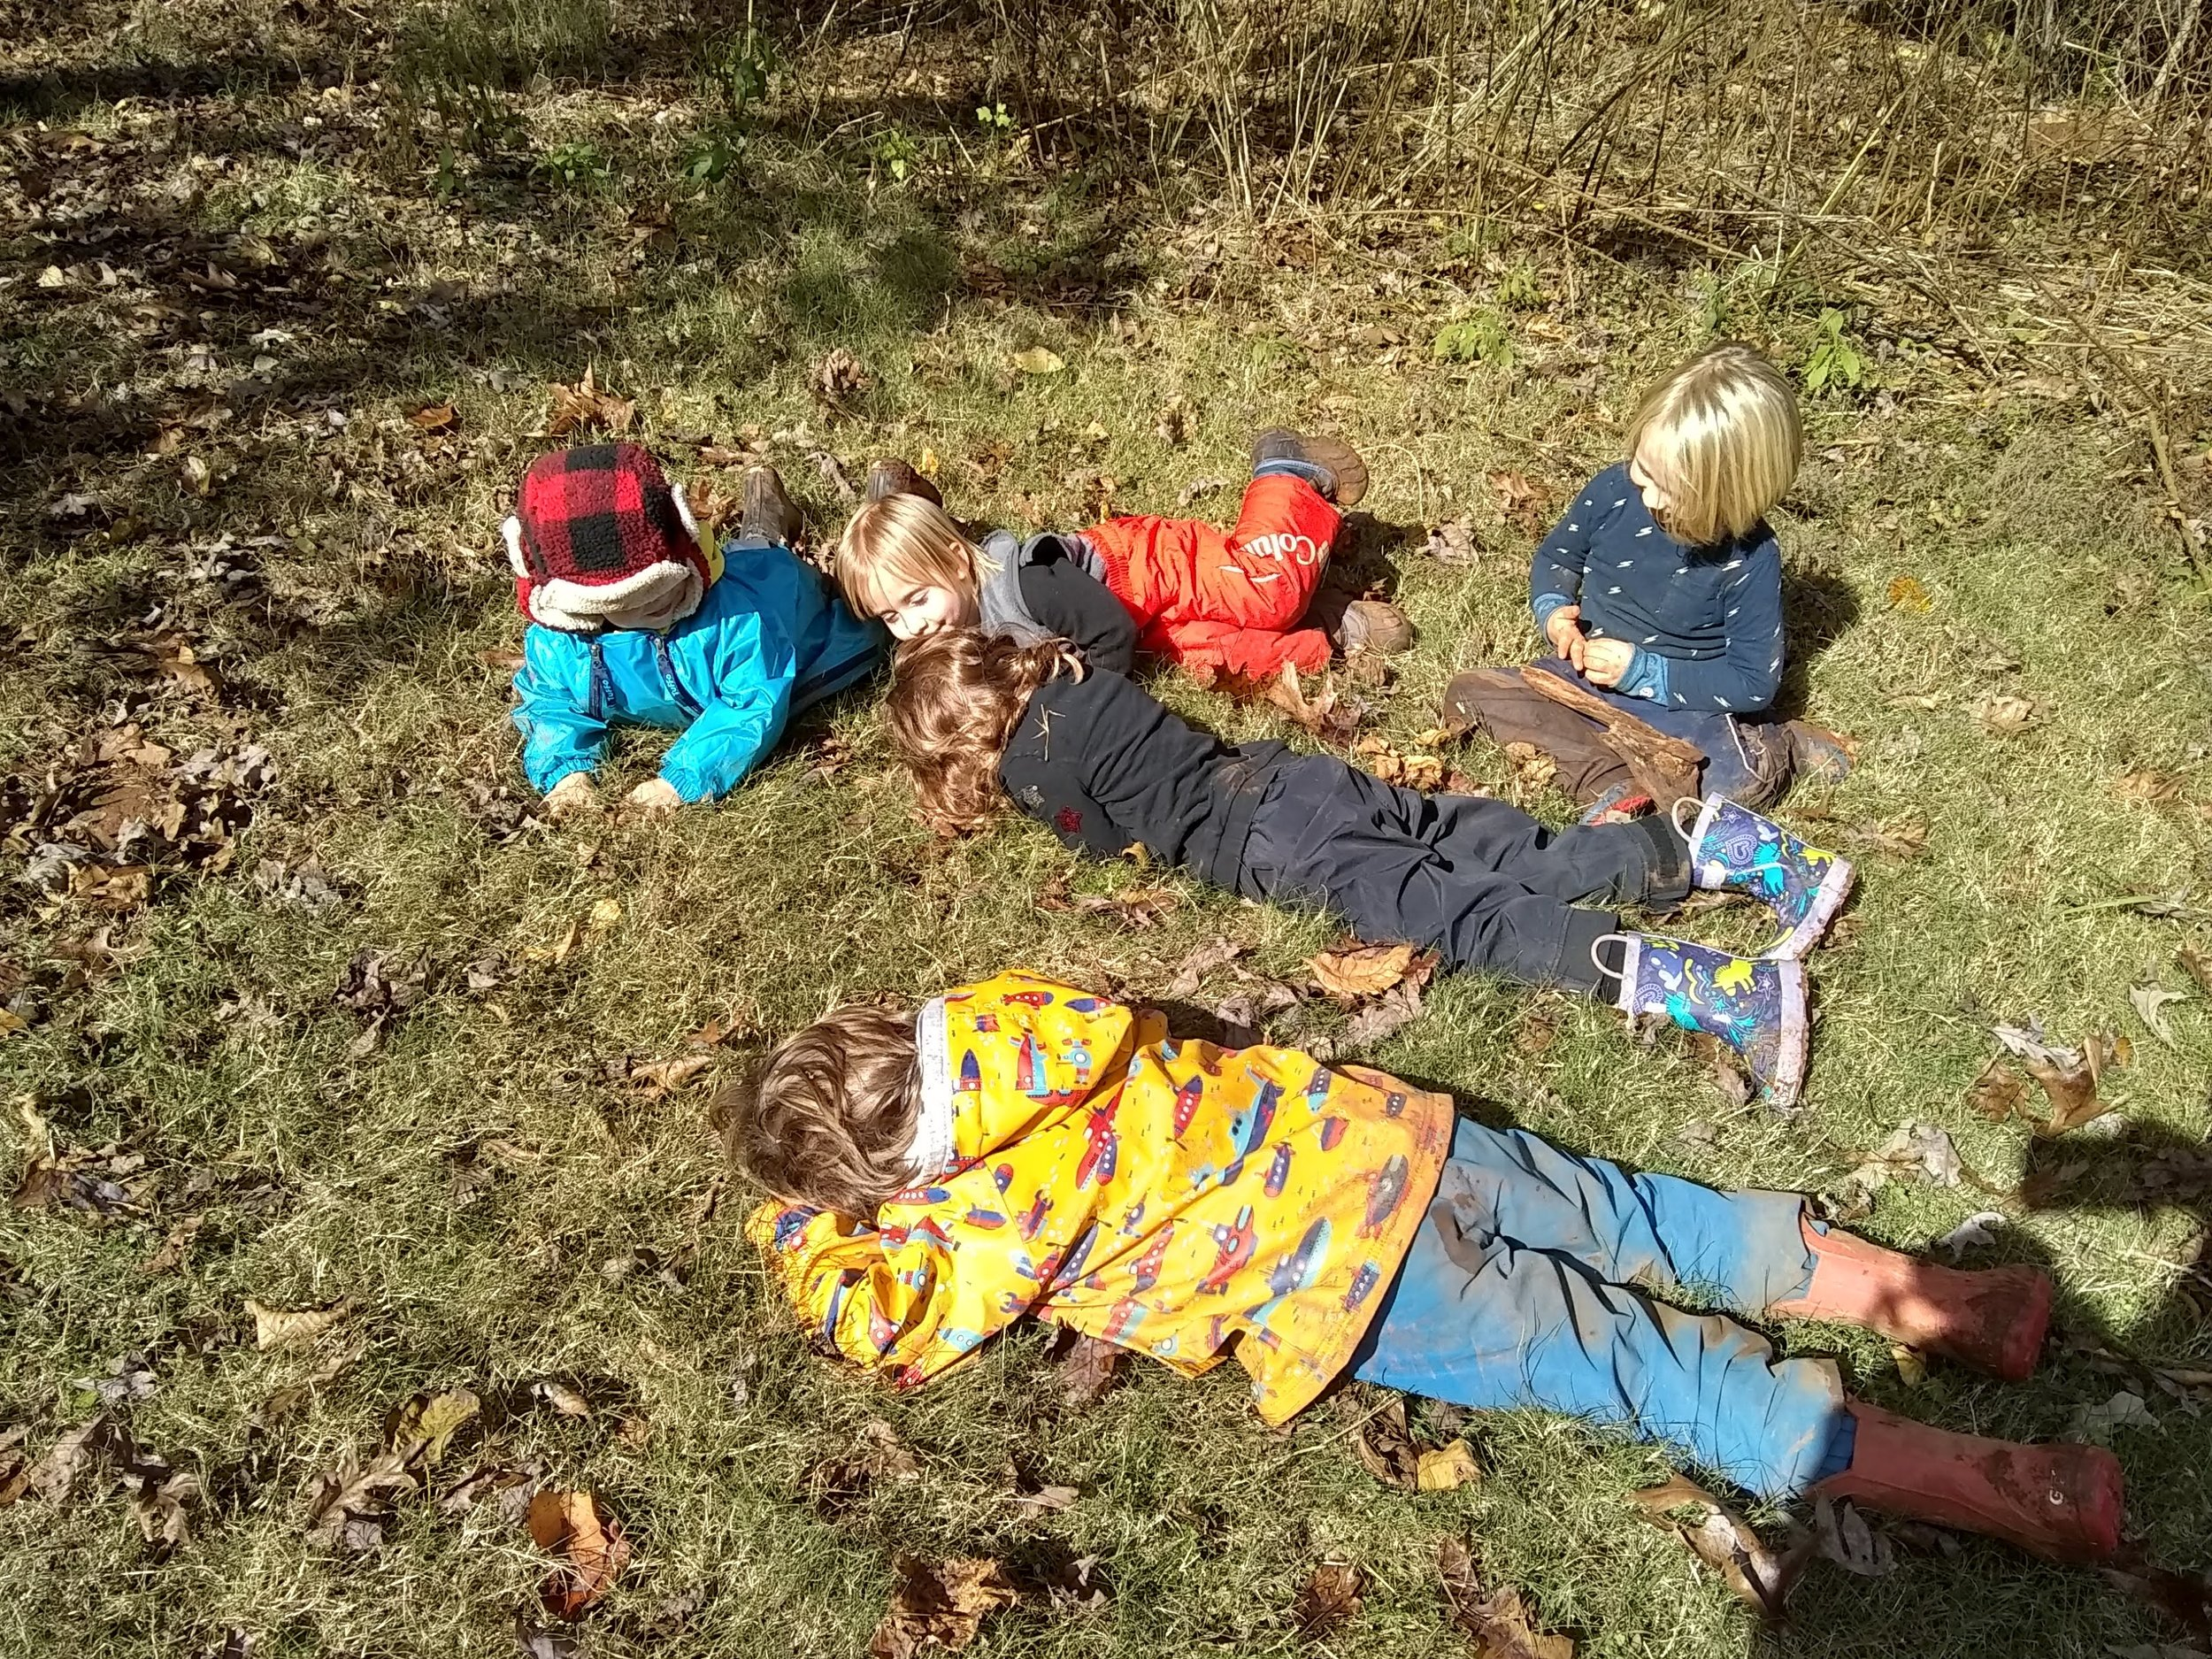 """The children instinctively """"recharged their batteries"""" in the warm sun after a morning in the shady, cool forest!"""